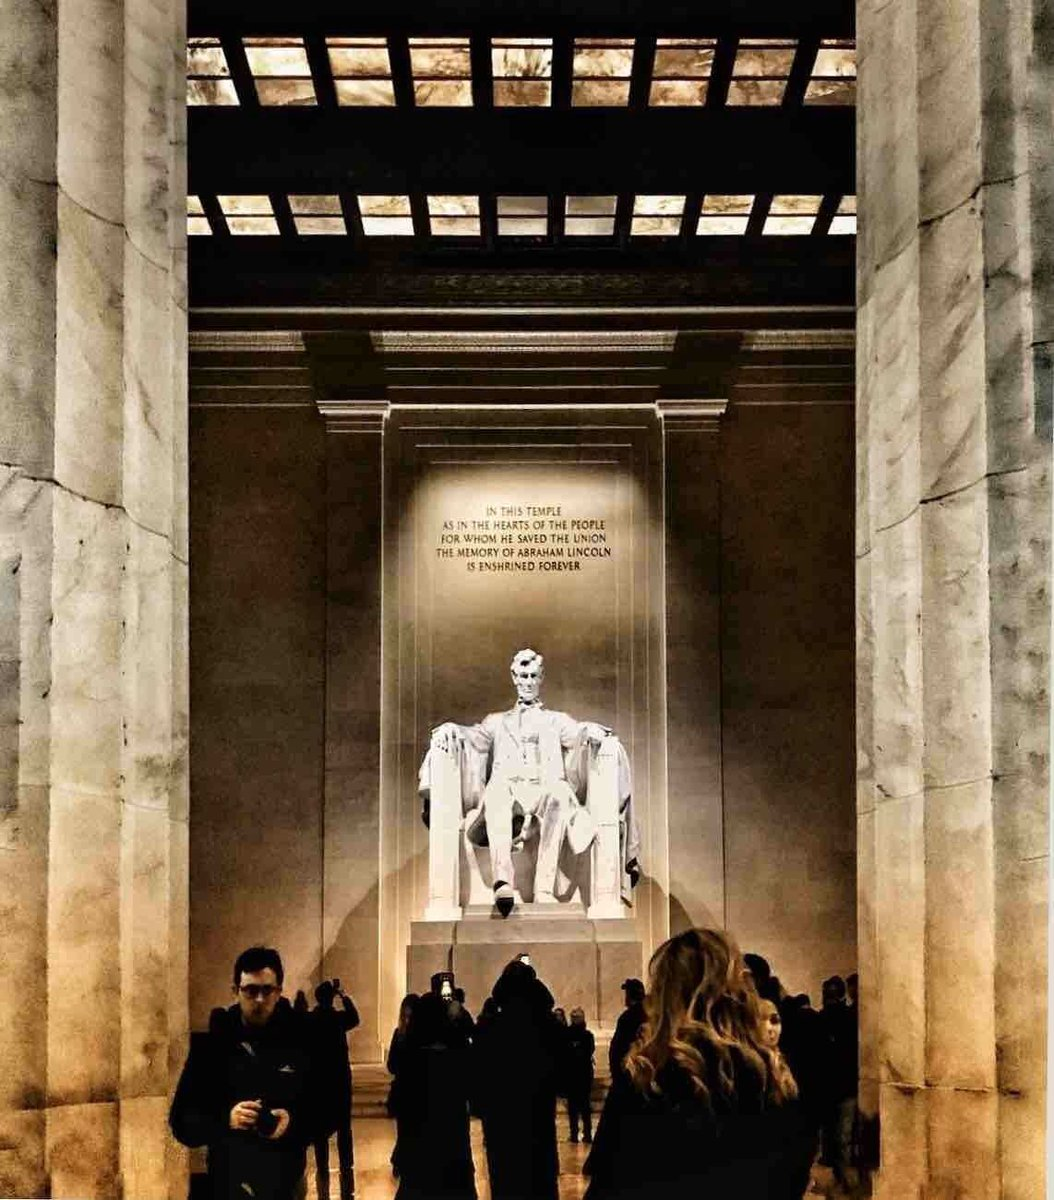 While it is only one of several monuments built to honor an American president, many regard the Lincoln Memorial as the very finest one.   Top 5 Things To Know Before Visiting 😊 🎧   #travelIUSA🇺🇸 #WashingtonDC  #traveltips #AbrahamLincoln  📸 Trover